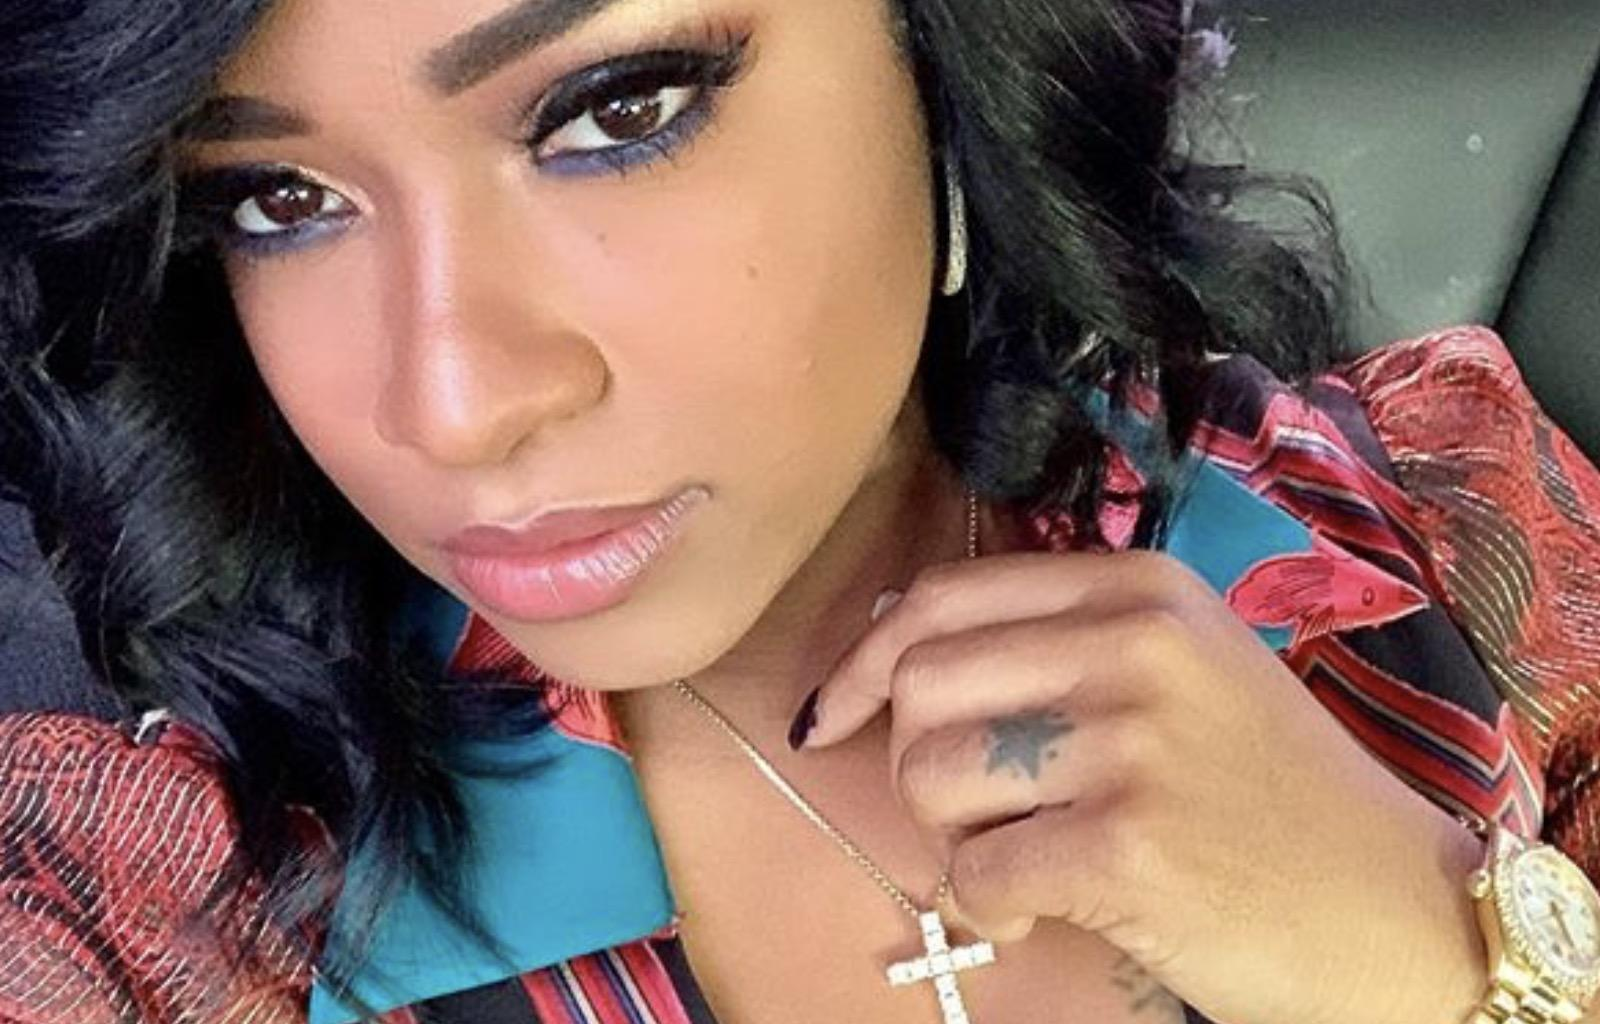 Toya Wright Shares Footage From The '5k Run/Walk' In Houston - The Event Was Something Else